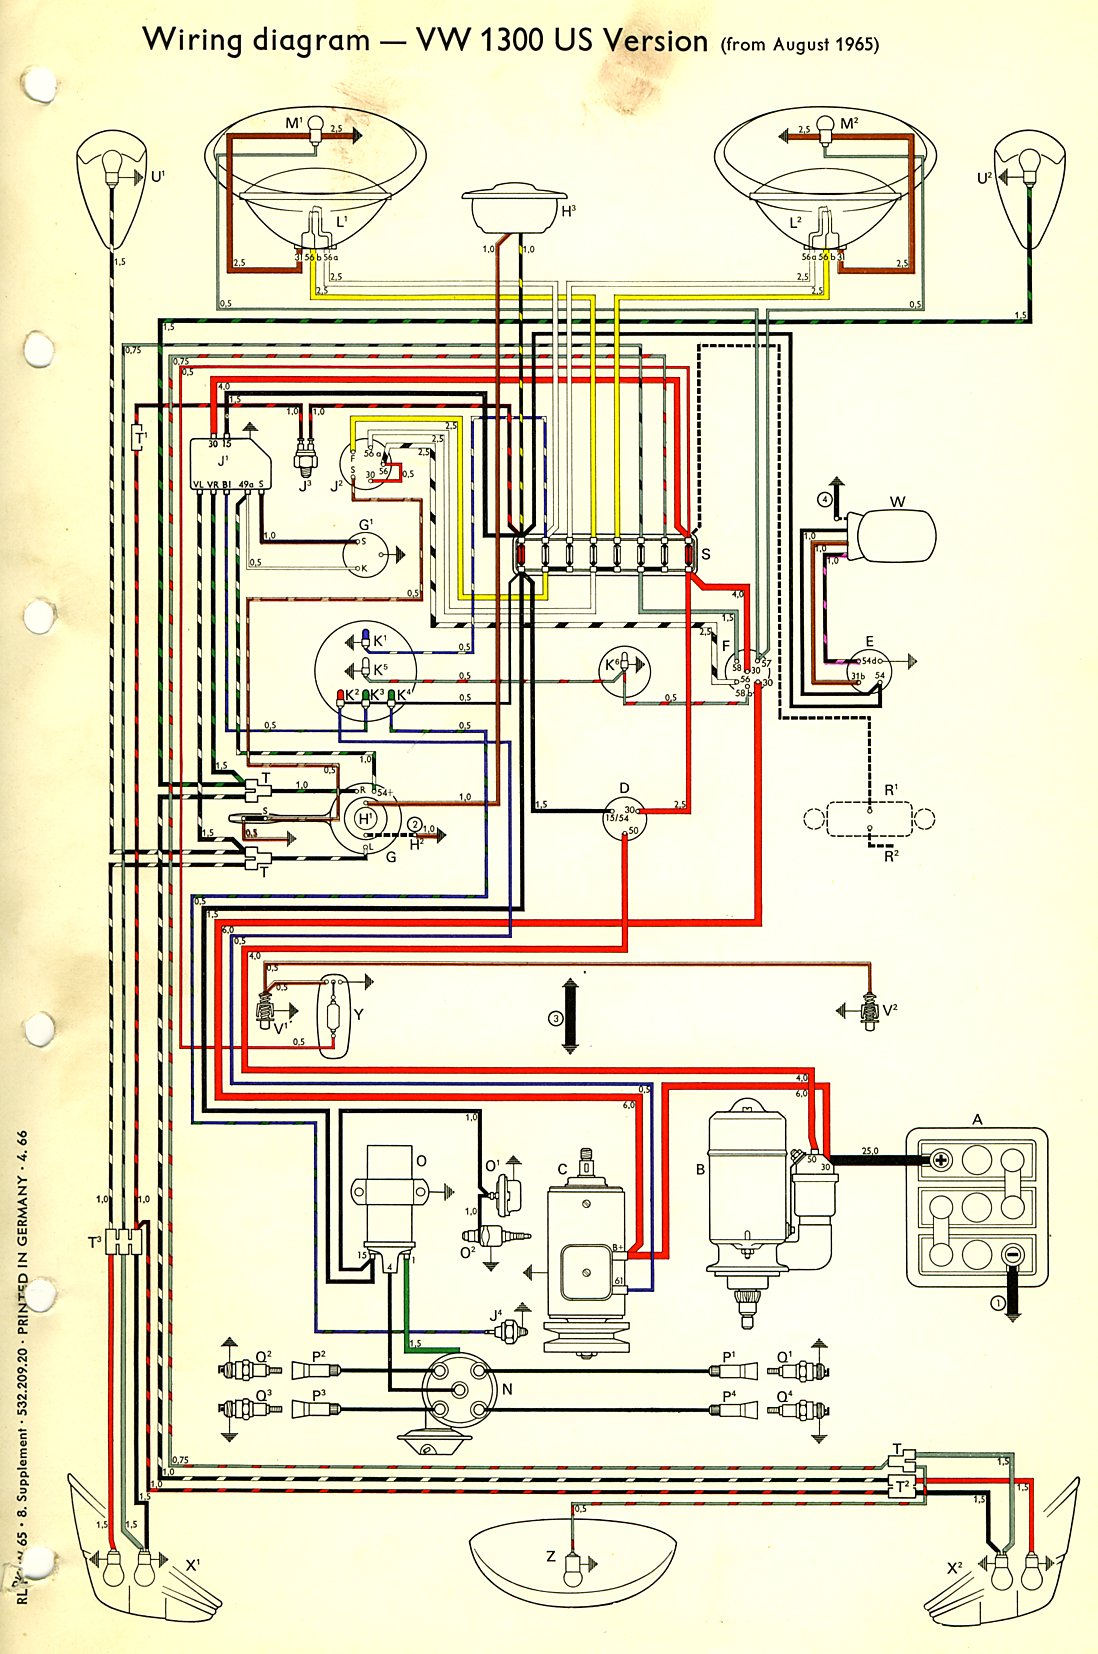 Air Cooled Vw Wiring Diagram The Portal And Forum Of Volkswagen Beetle Alternator Thesamba Com Type 1 Diagrams Rh Engine